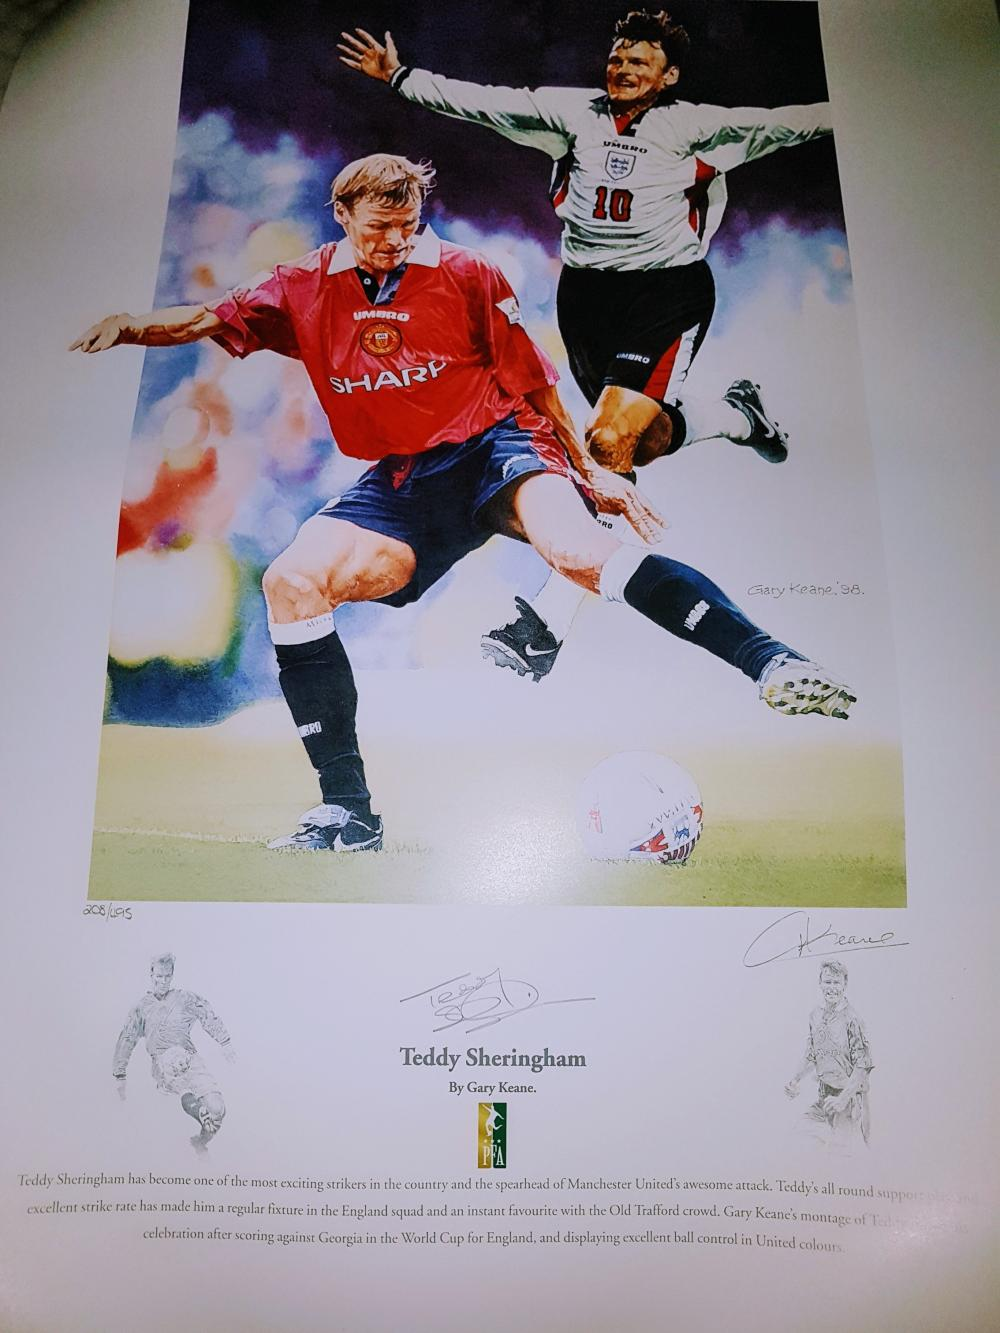 Lot 178: Signed Football Print by ex Manchester United & England player  Teddy Sheringham